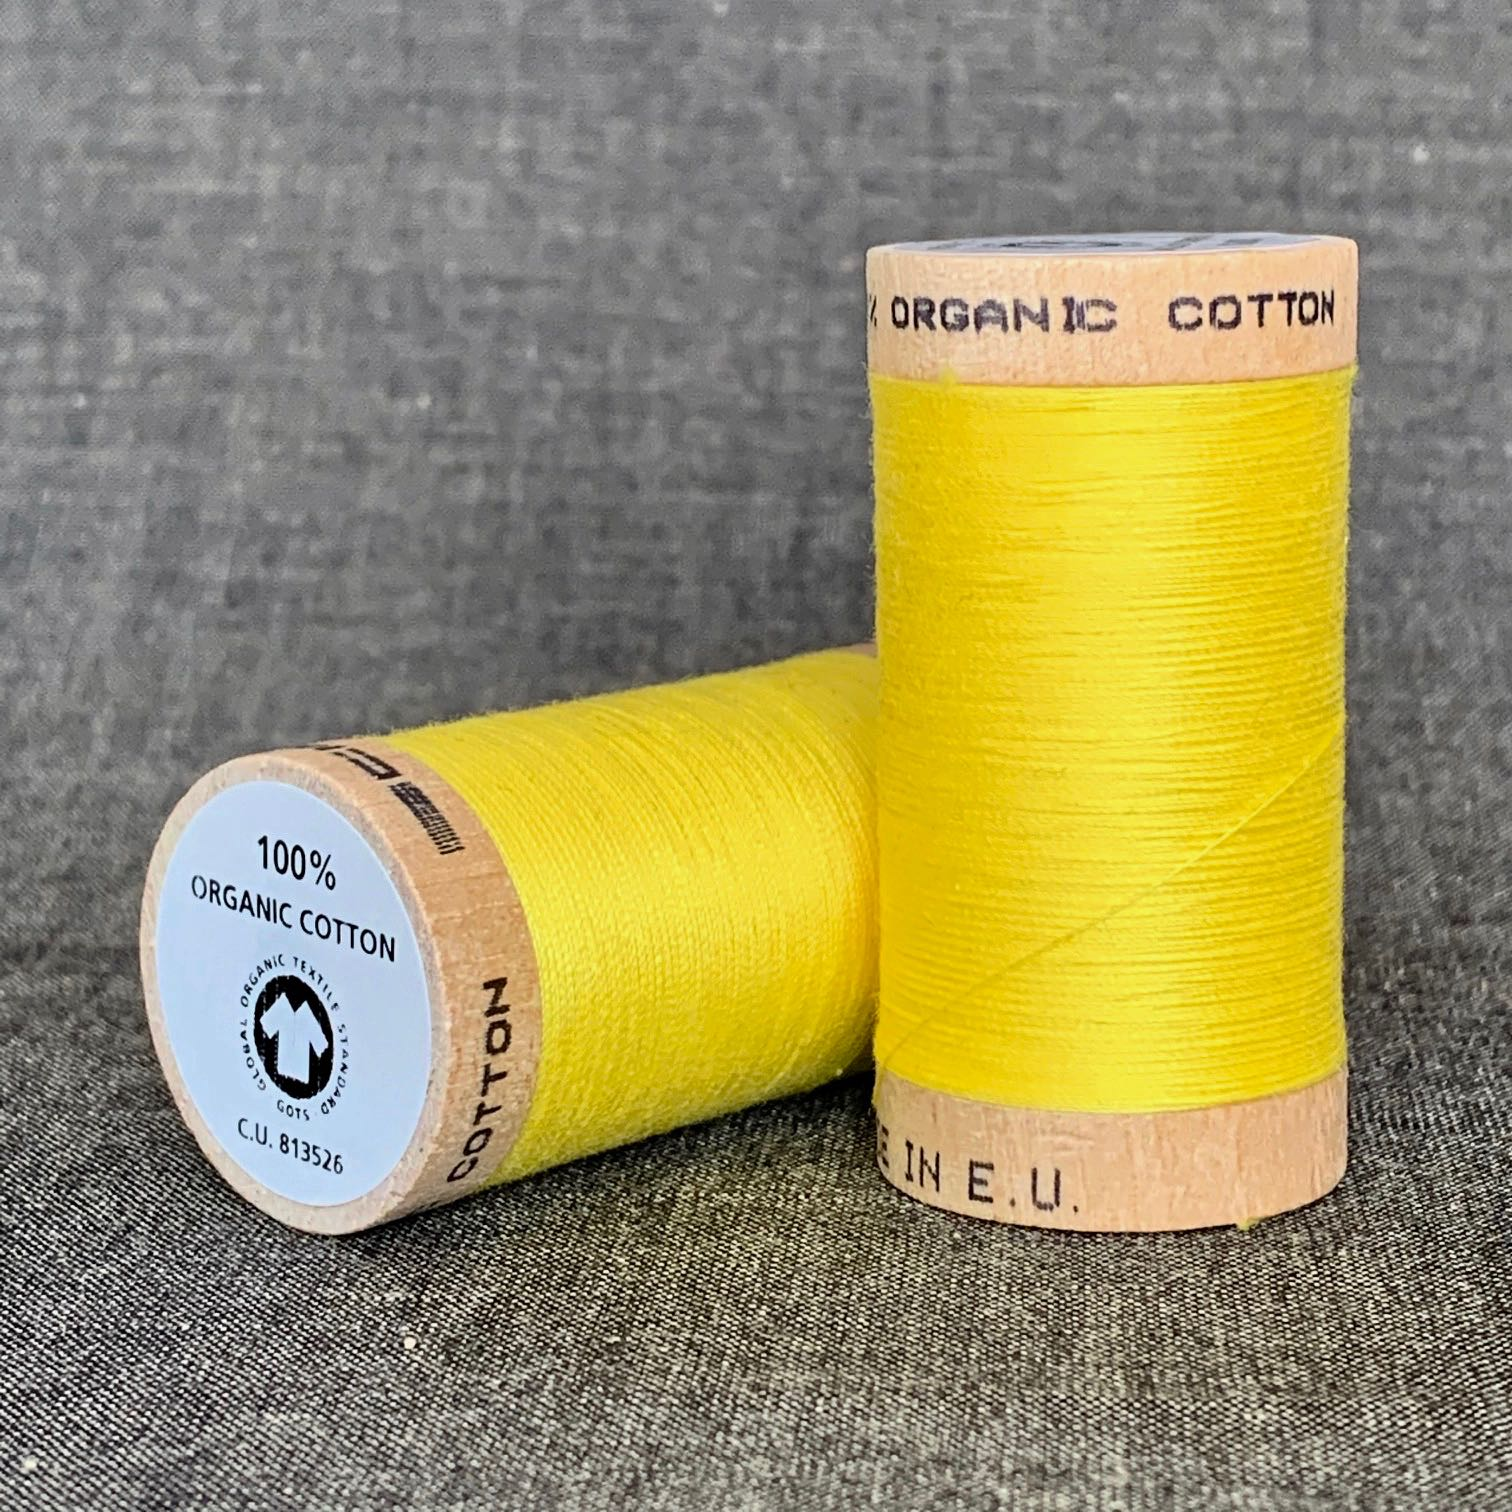 Scanfil Organic Cotton Sewing Thread Bright Yellow